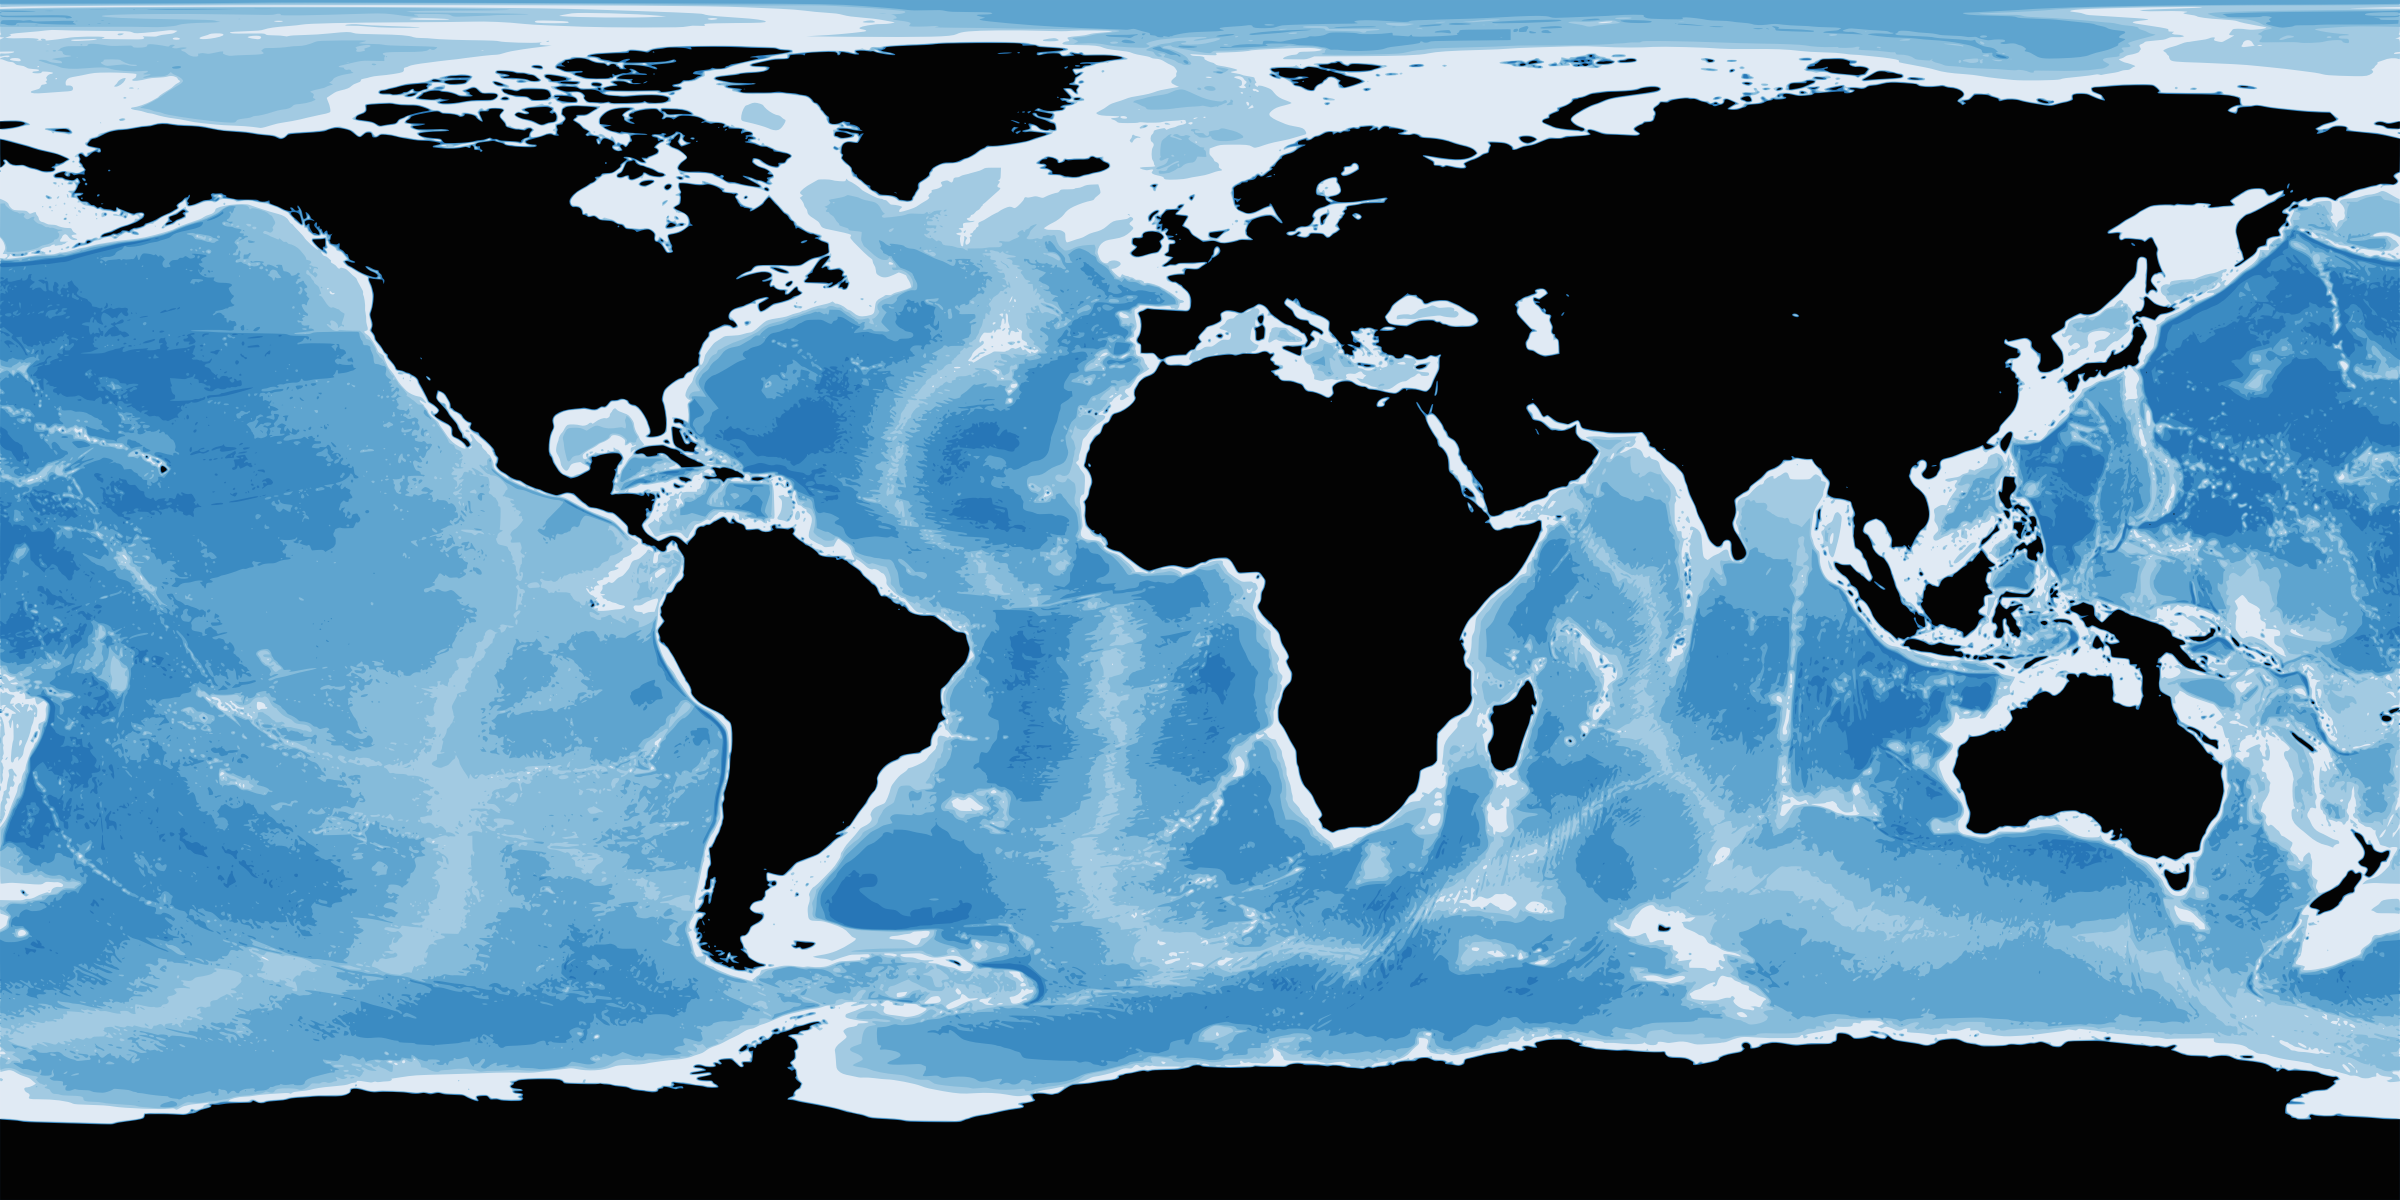 Bathymetry Map by j4p4n